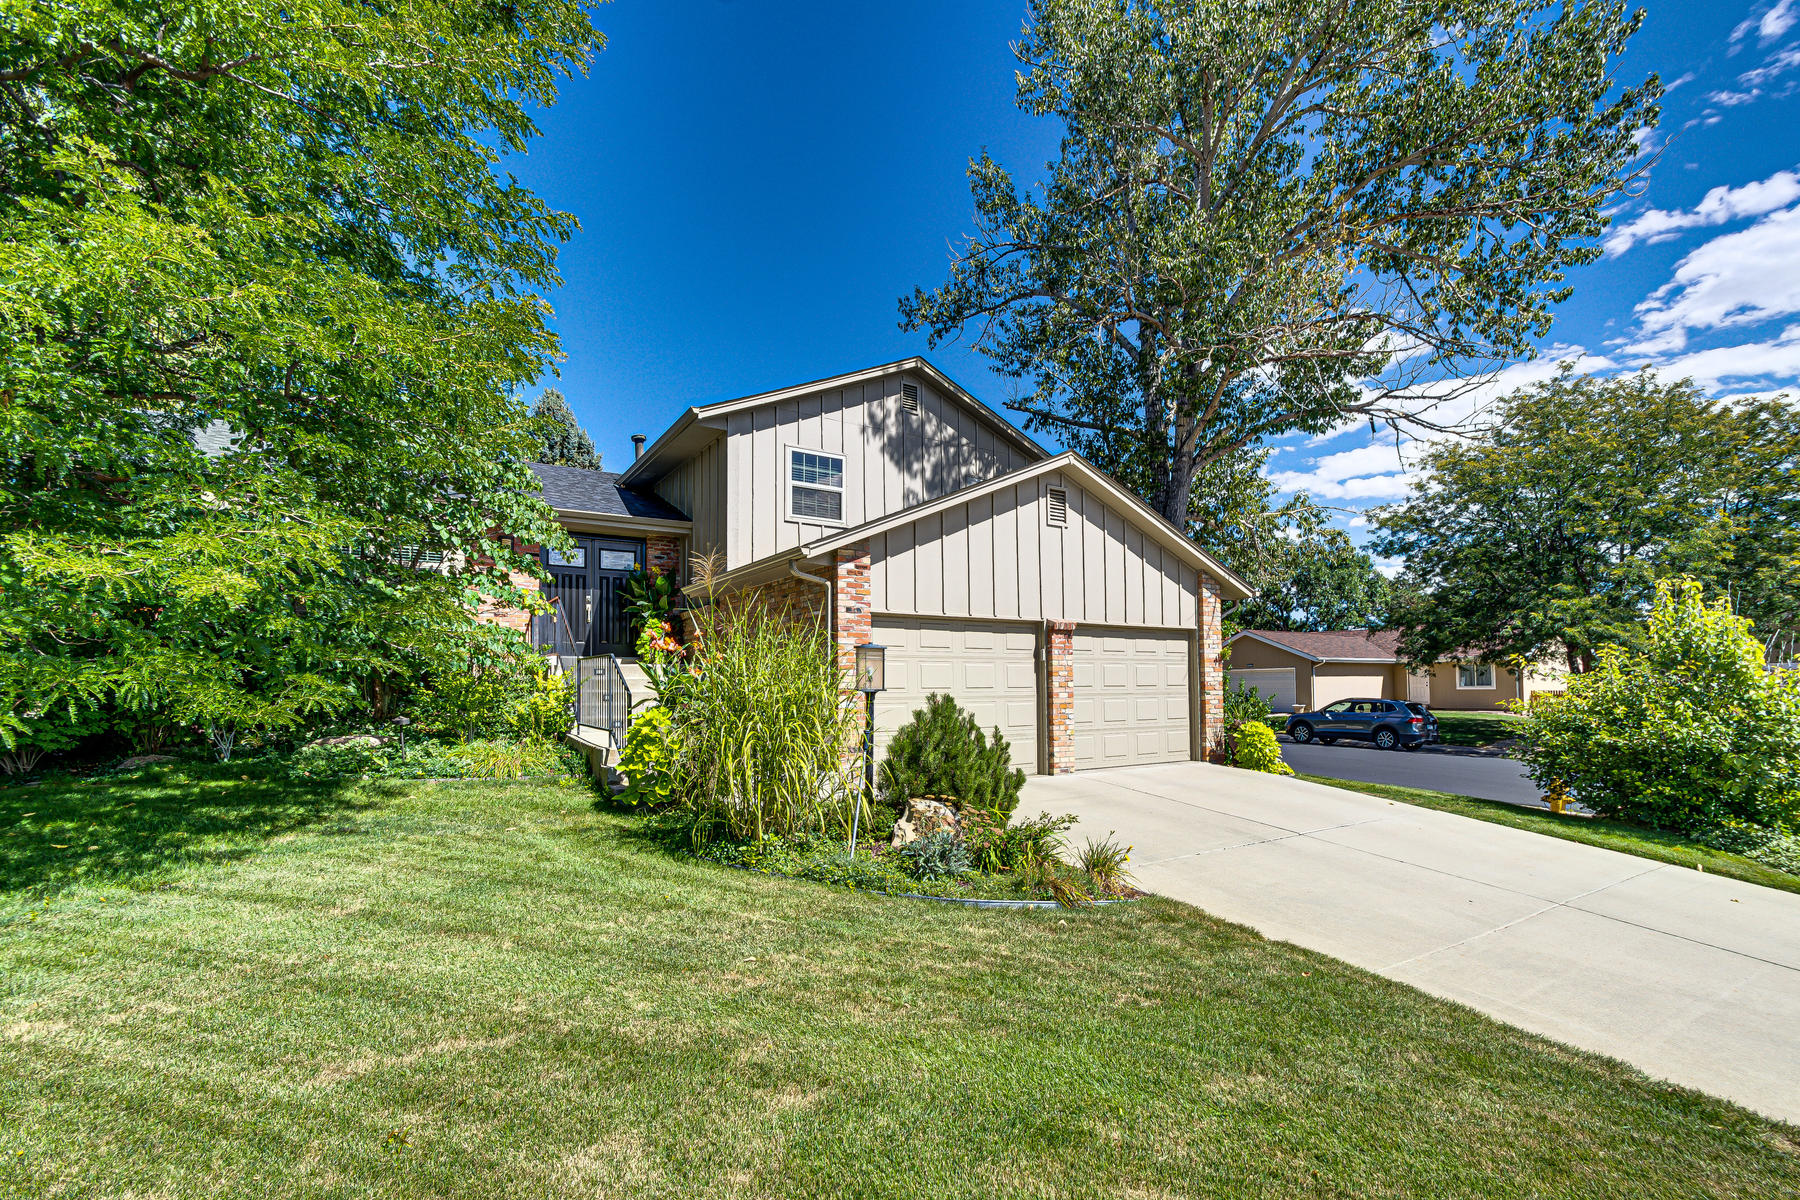 Single Family Homes for Active at Contemporary Styling Throughout 6063 S Kingston Circle Englewood, Colorado 80111 United States